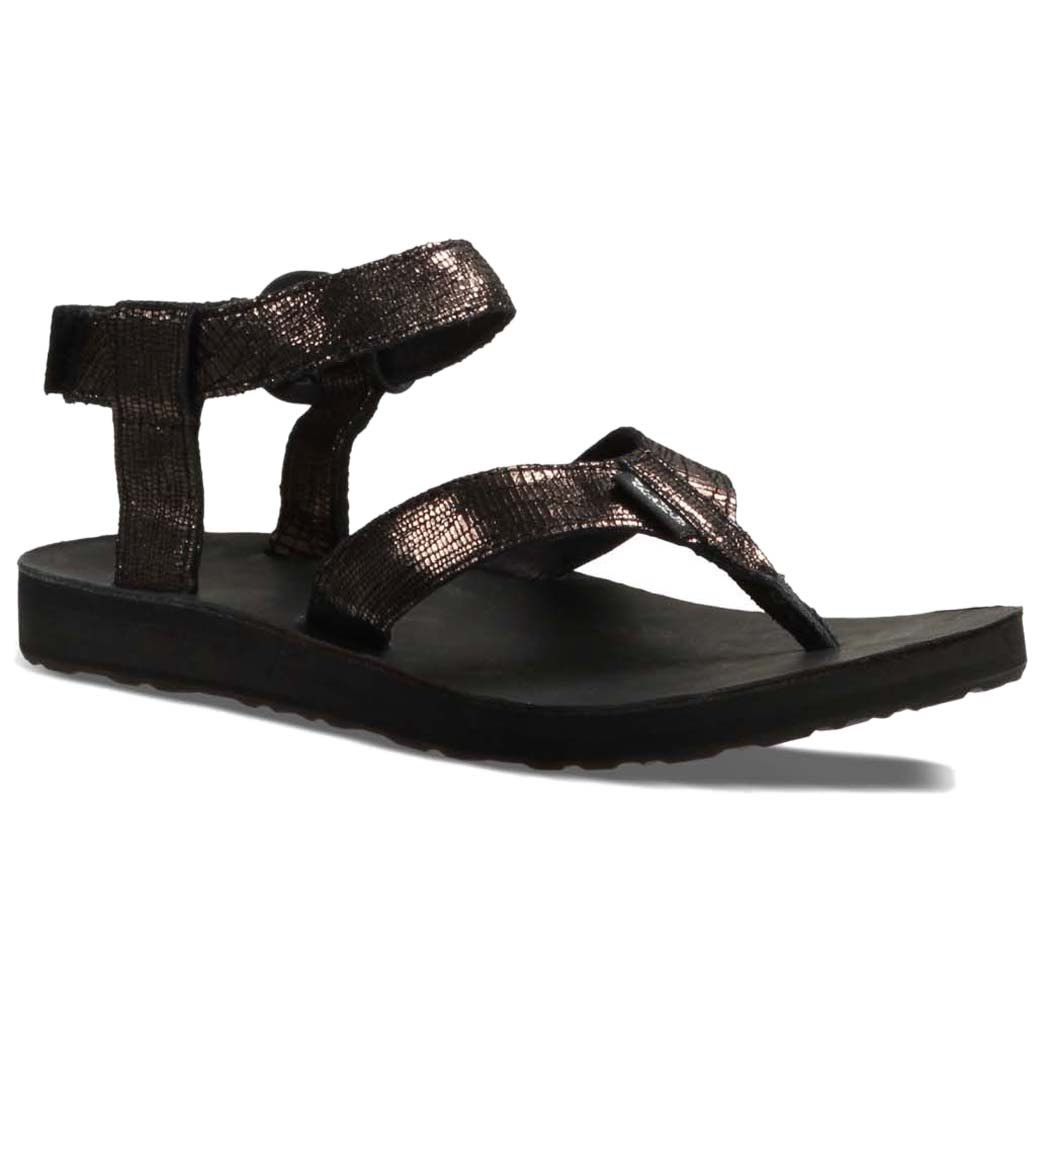 e6436160fdf7 Teva Women s Original Sandal Leather Metallic at SwimOutlet.com ...